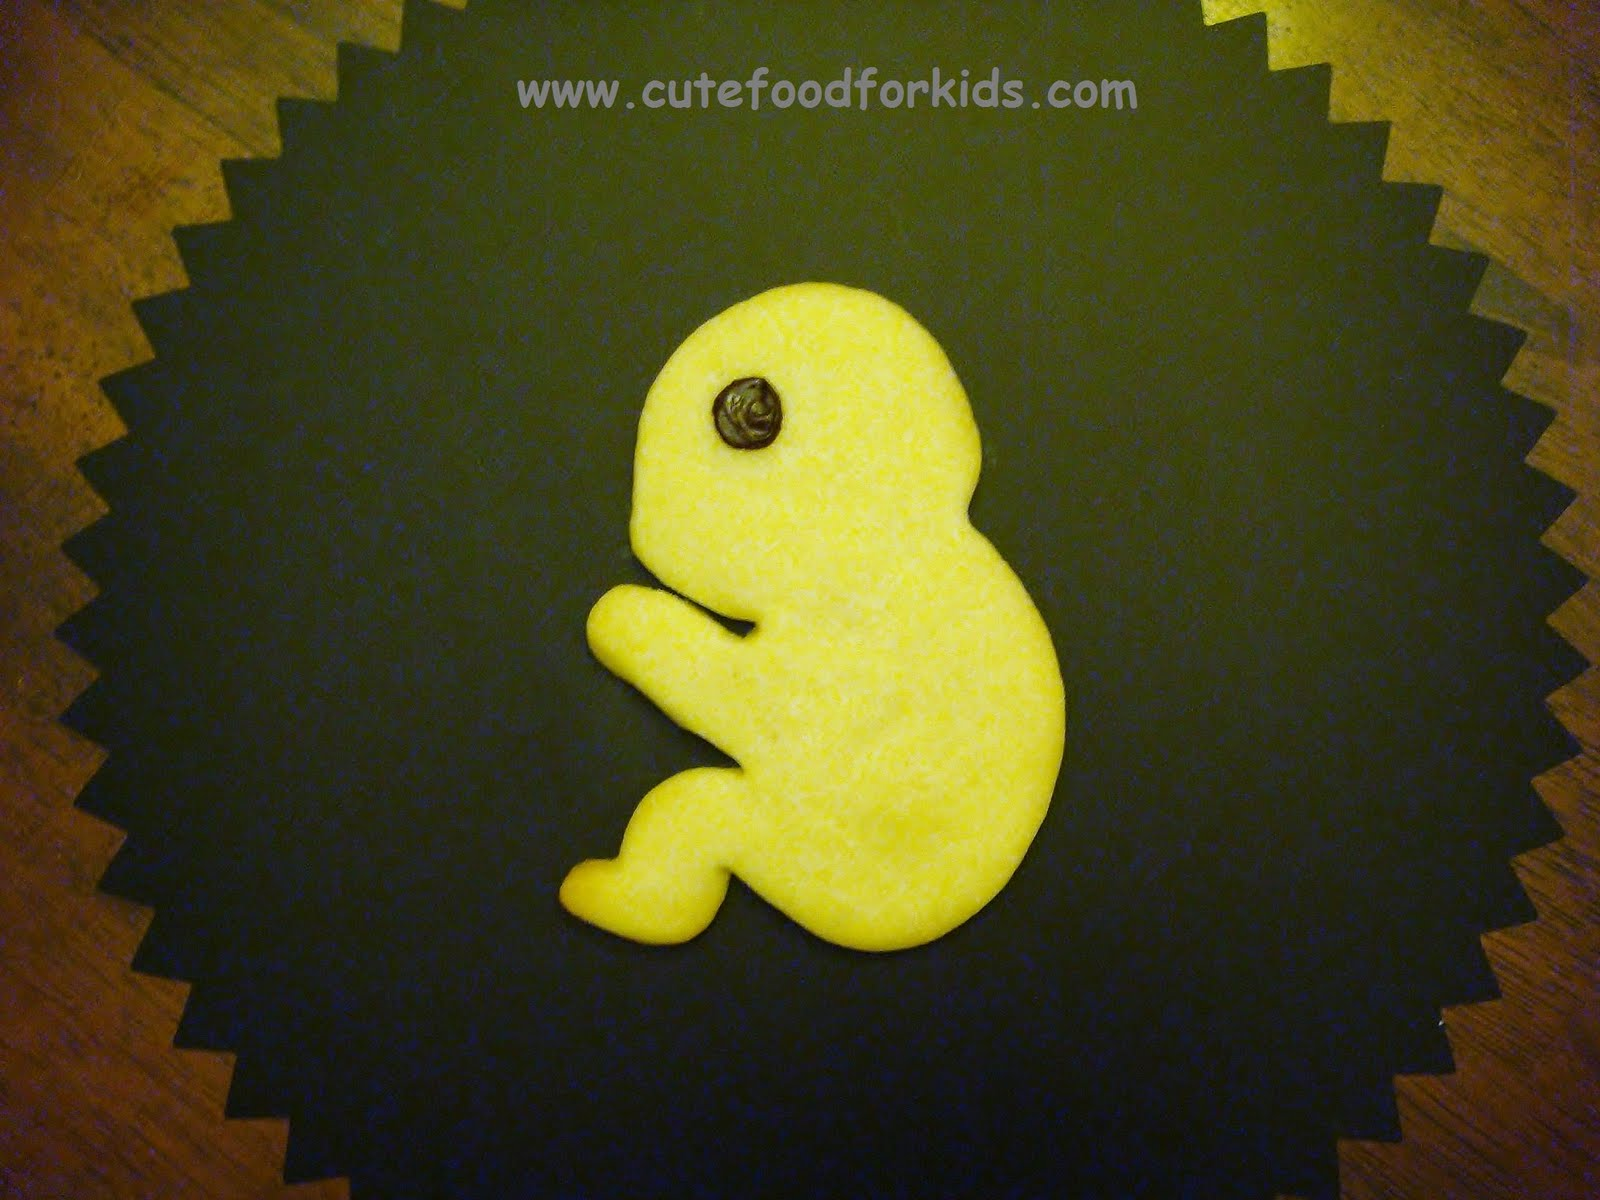 Cute Food For Kids Fetus Cookie Lots More Cookie Ideas For Baby